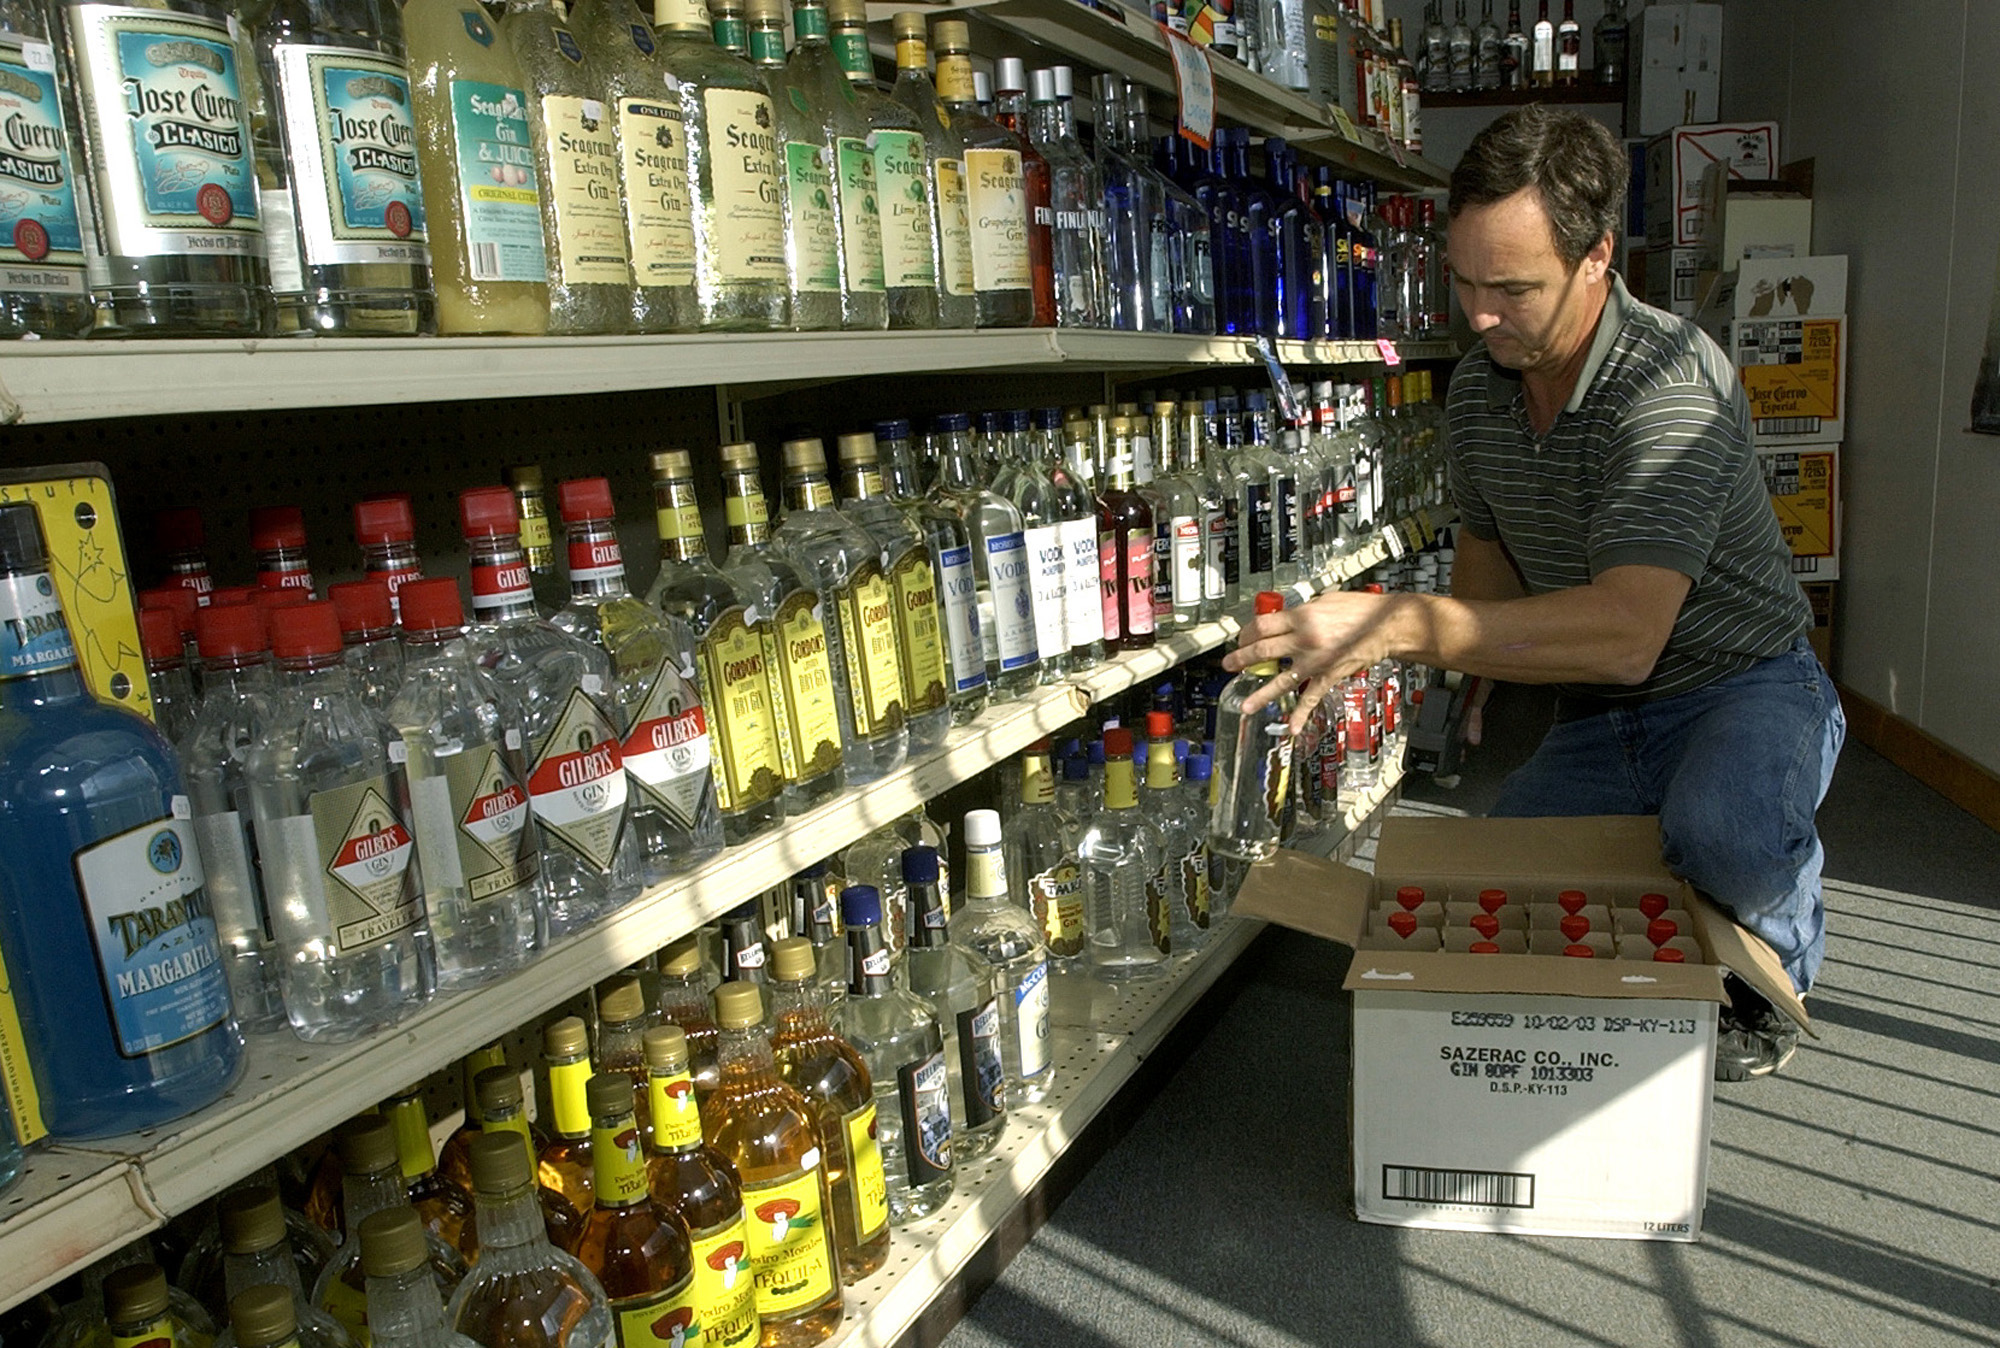 Texas Liquor Stores To Appeal Walmart Booze Sales Ruling